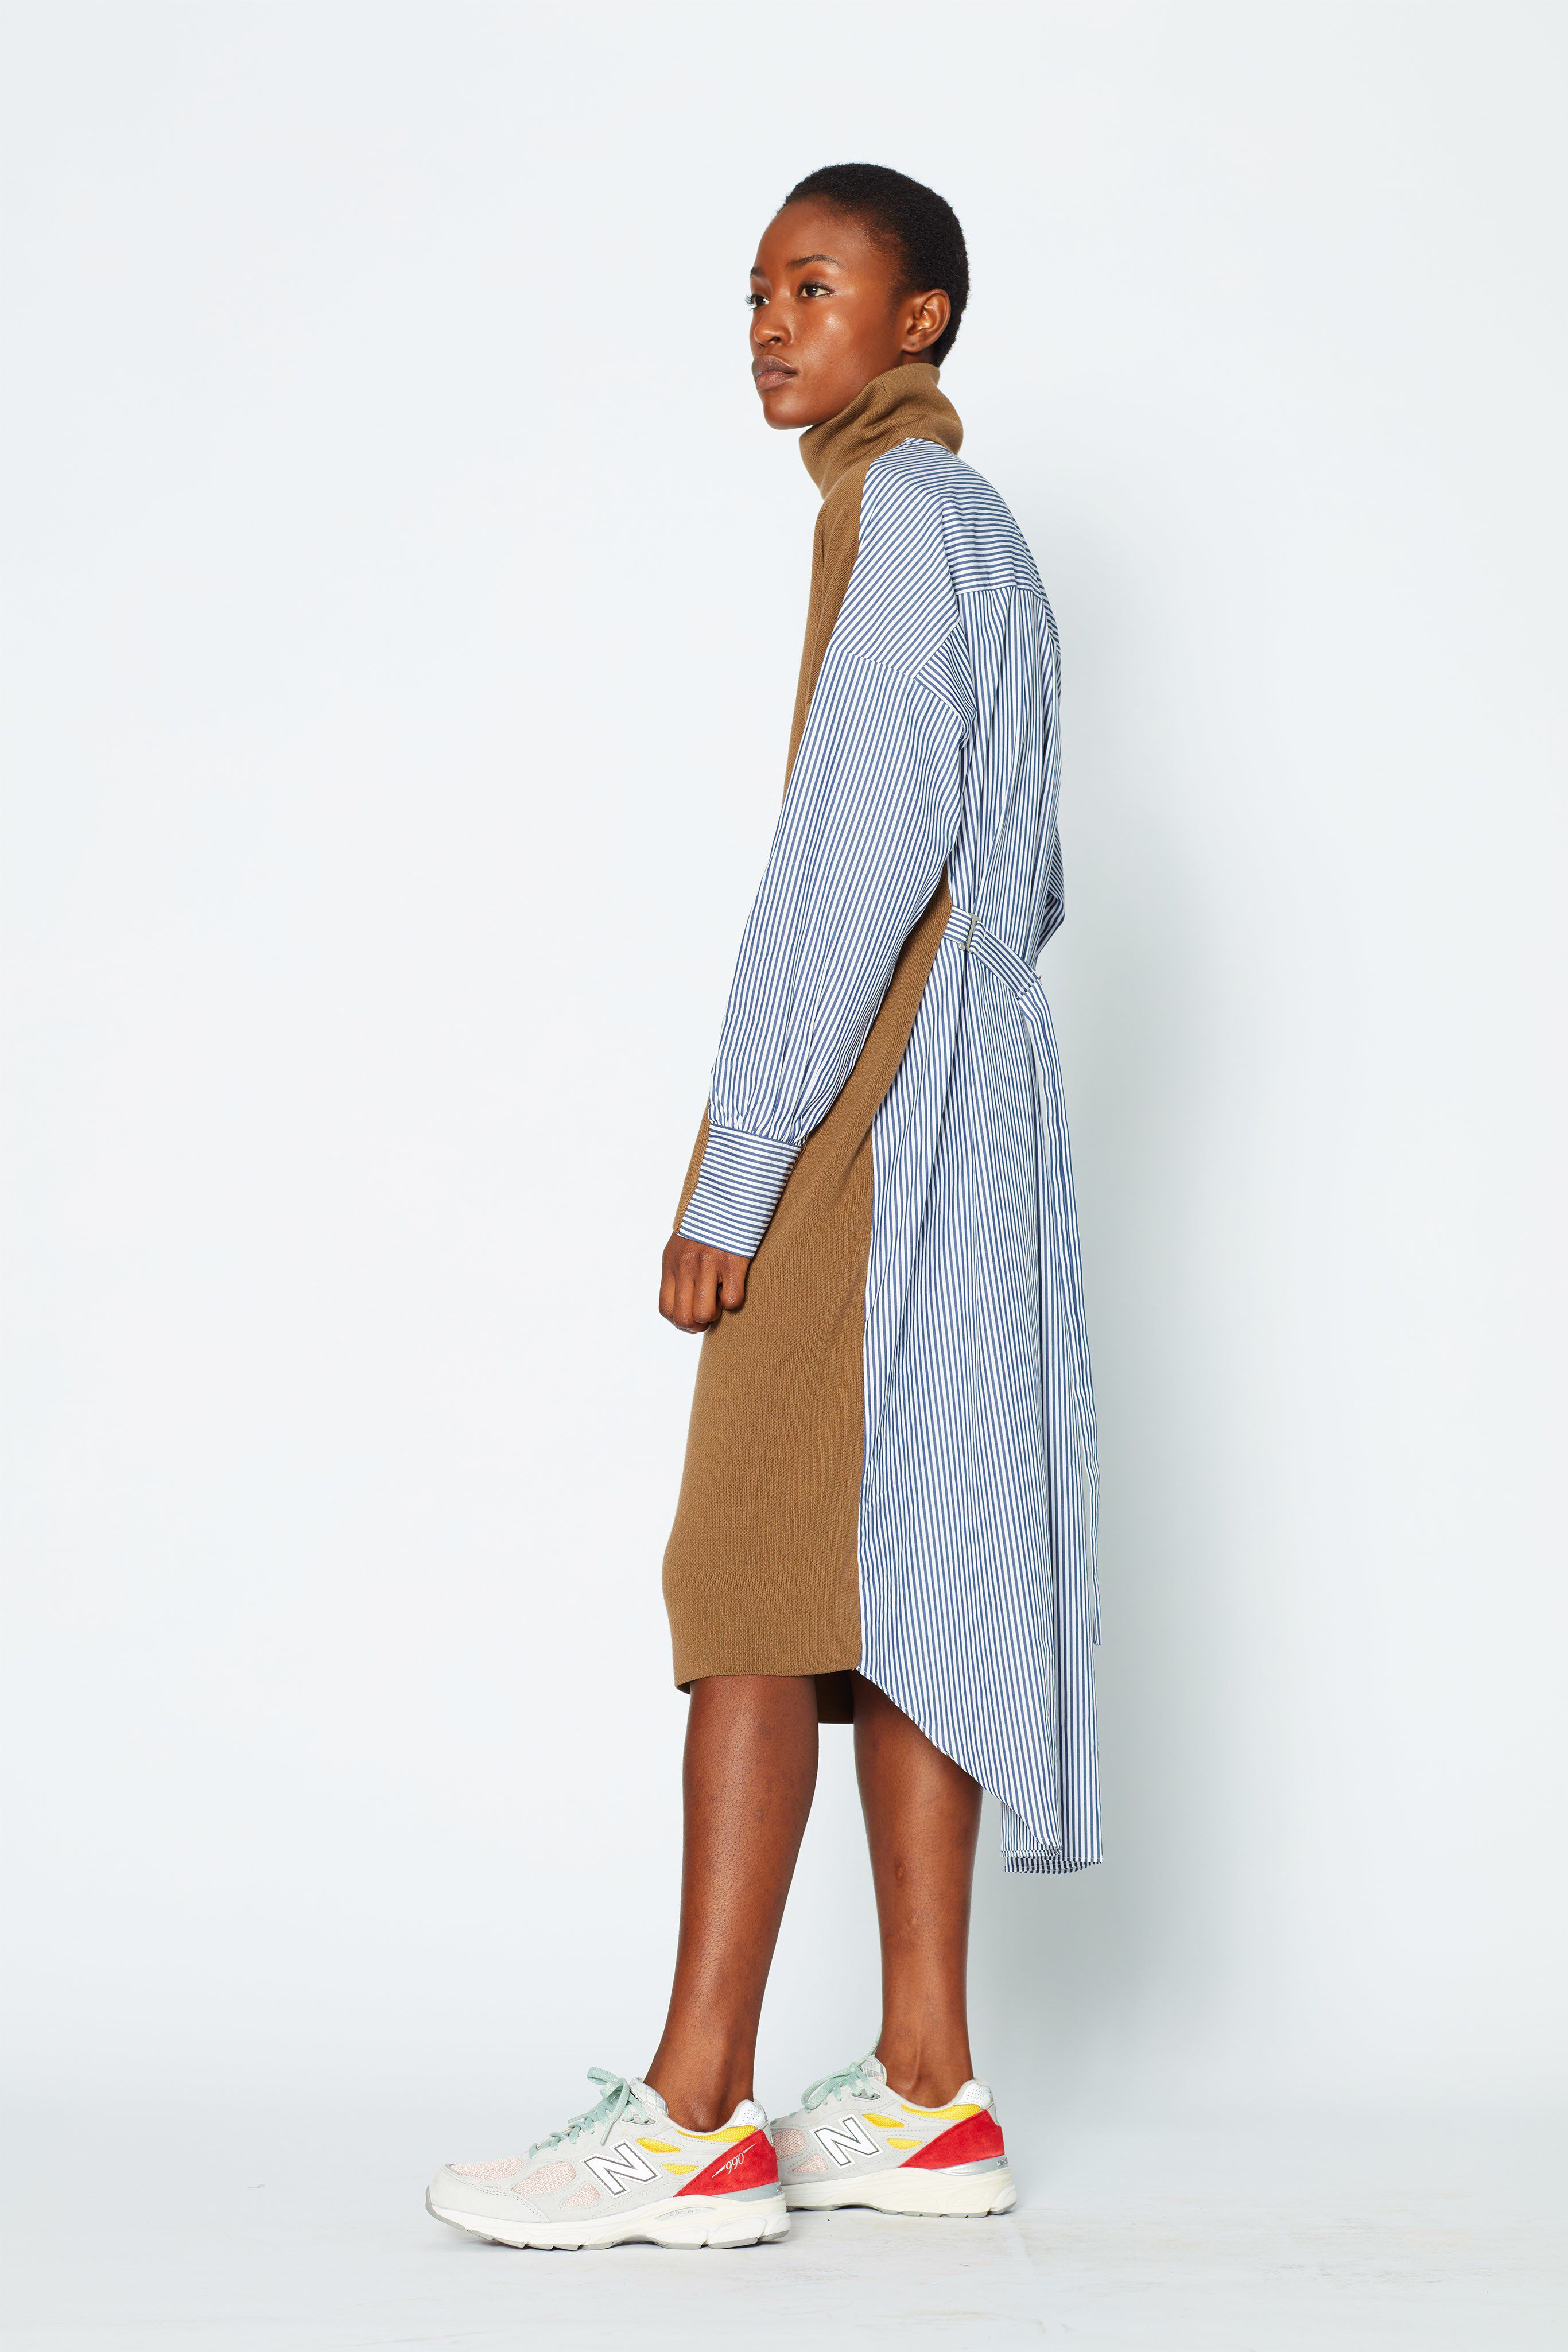 Tibi Resort 2019 Collection pictures